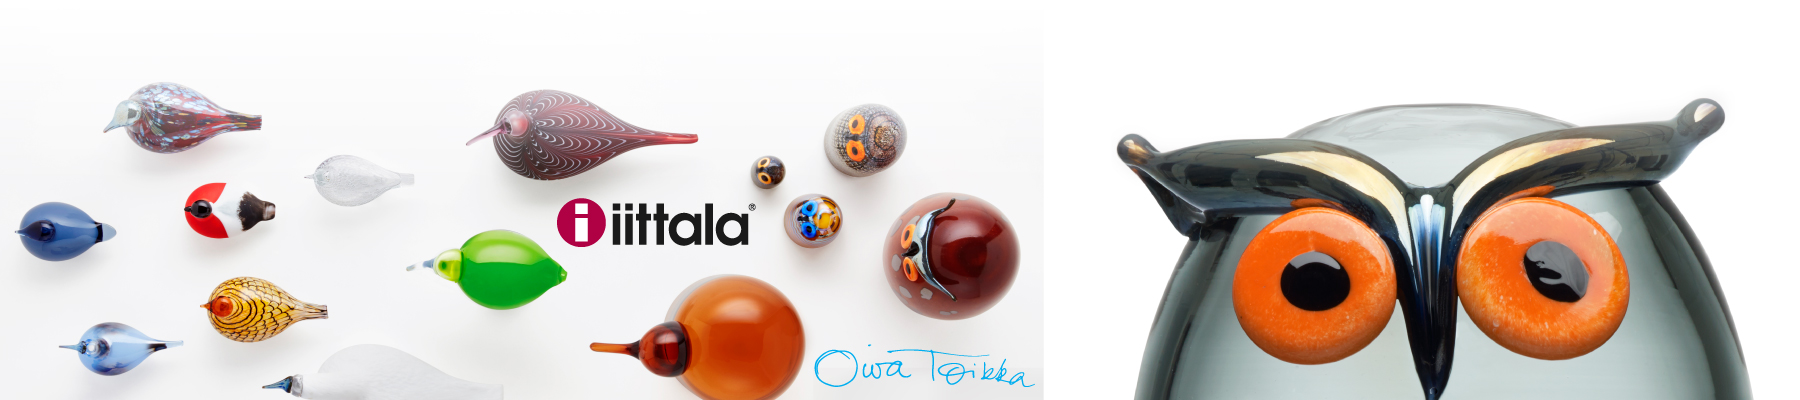 iittala Oiva Toikka Glass Birds - Mouthblown & Handmade